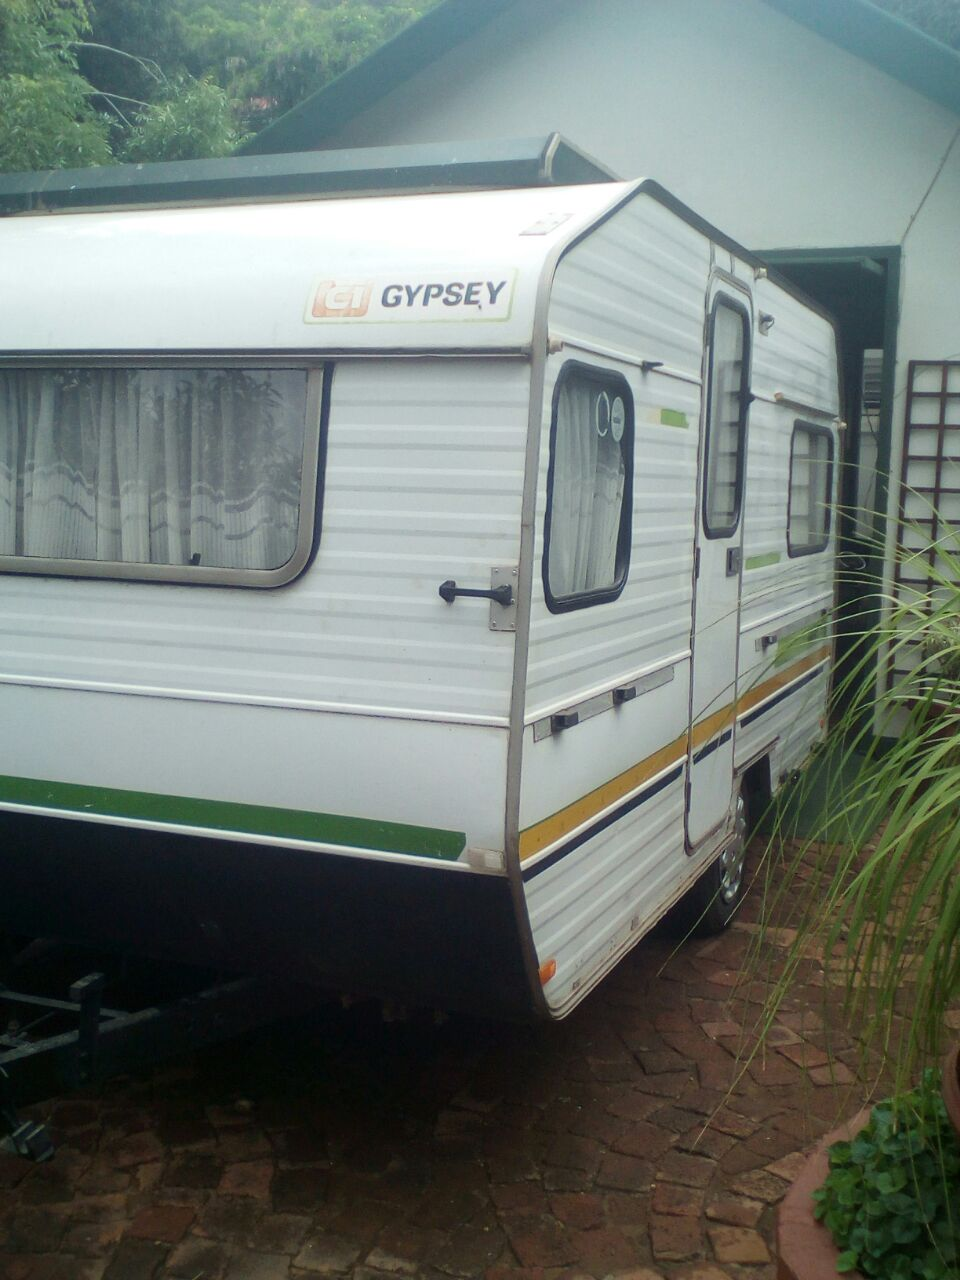 Gypsey Caravette 5 for sale R20 000 negotiable